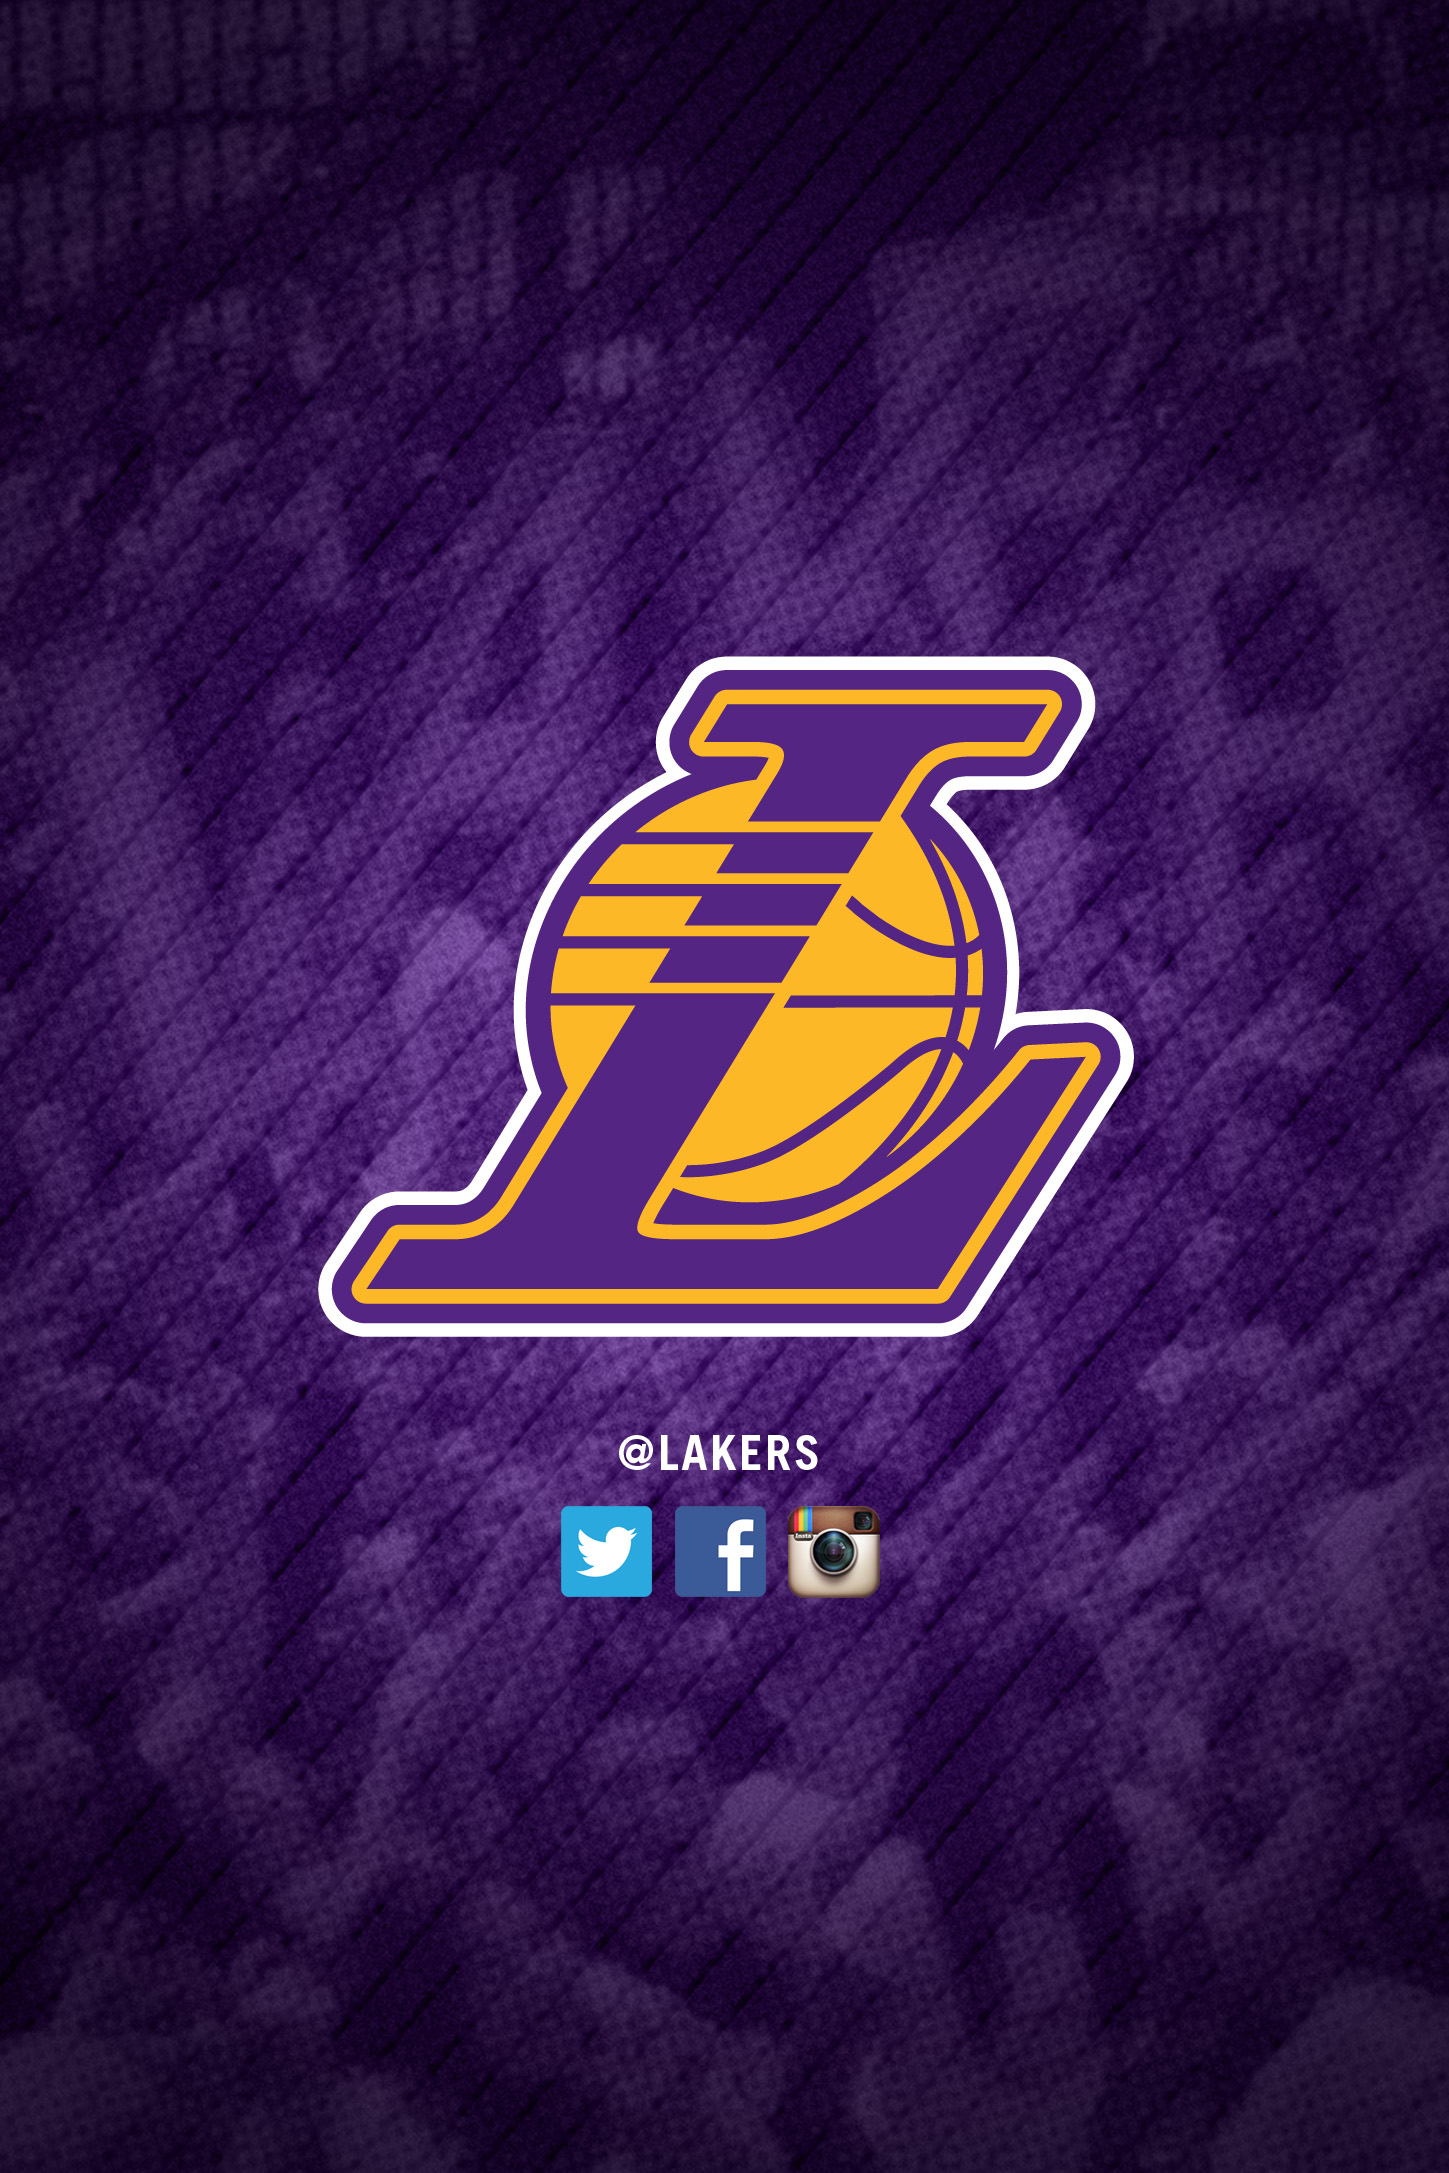 lakers iphone logo wallpaper images pictures becuo